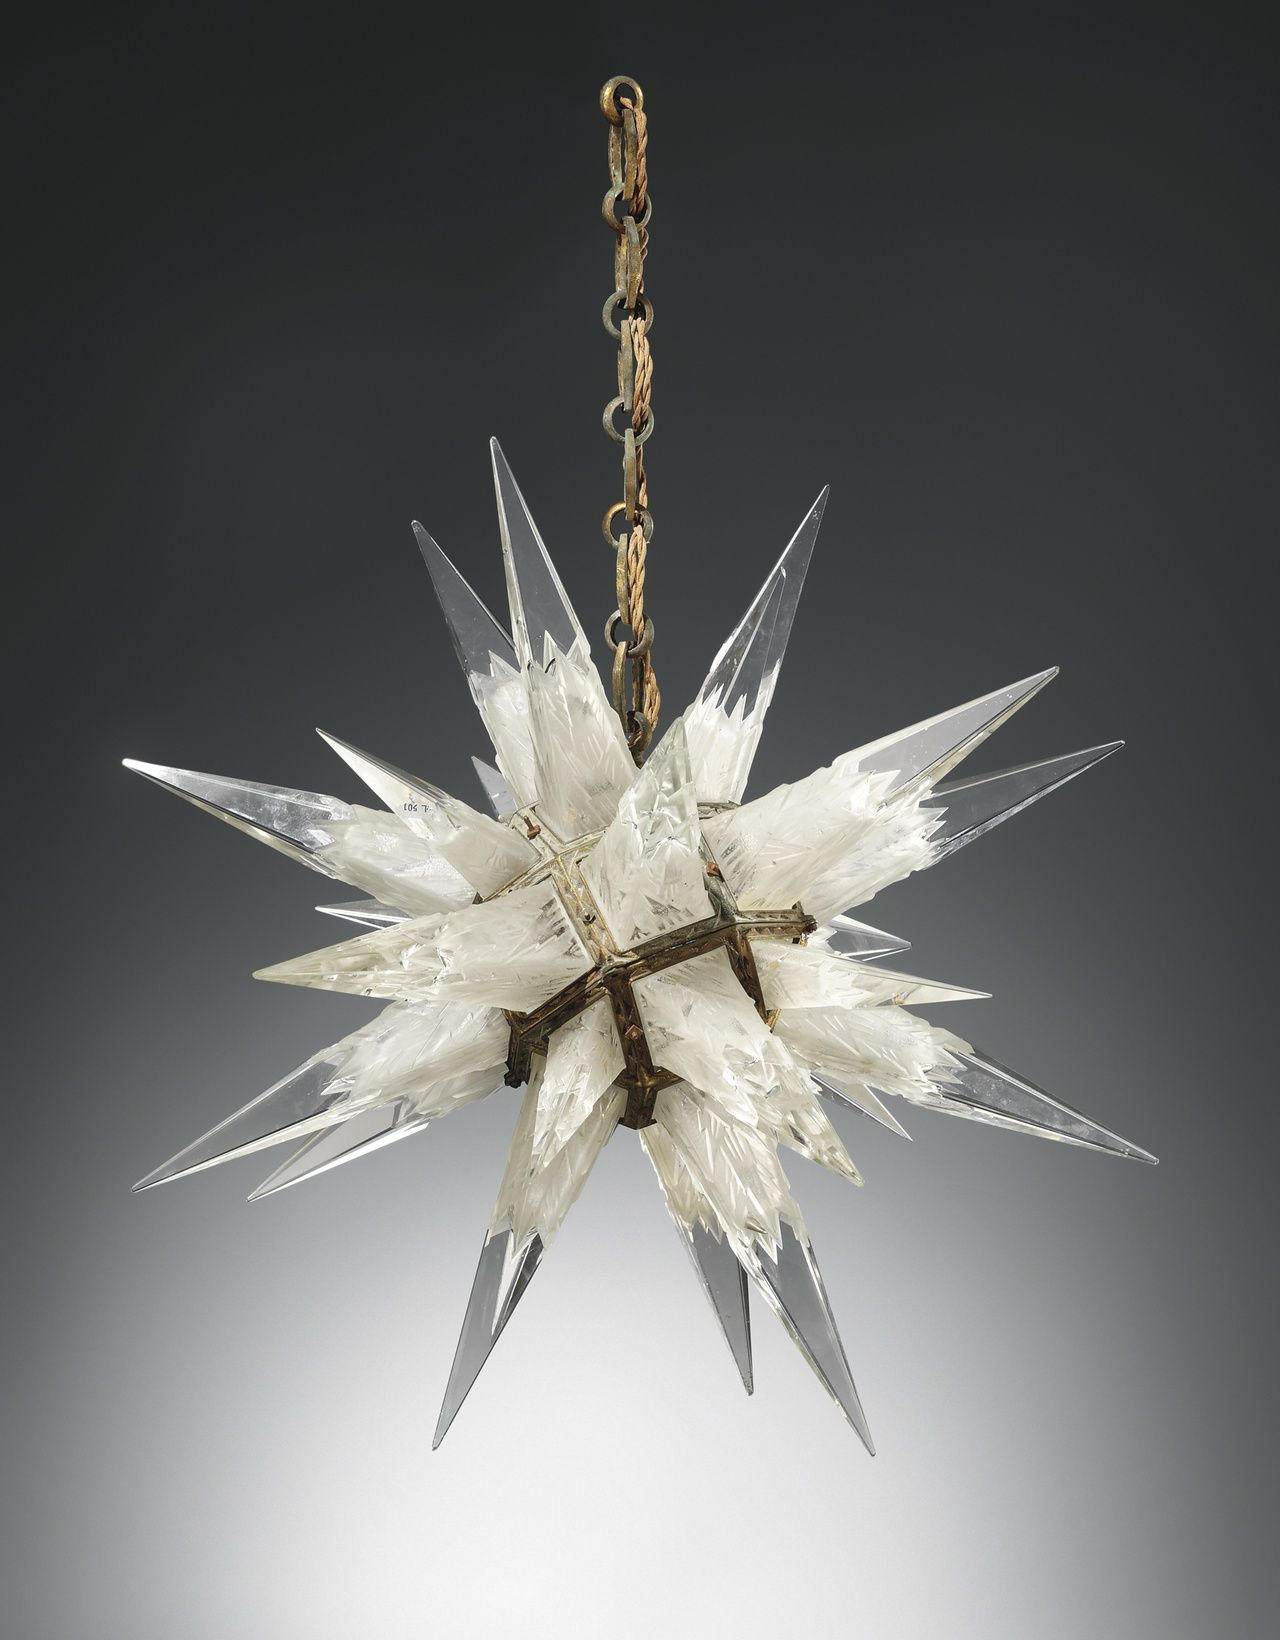 Amazing pointed star crystal chandelier art Very non